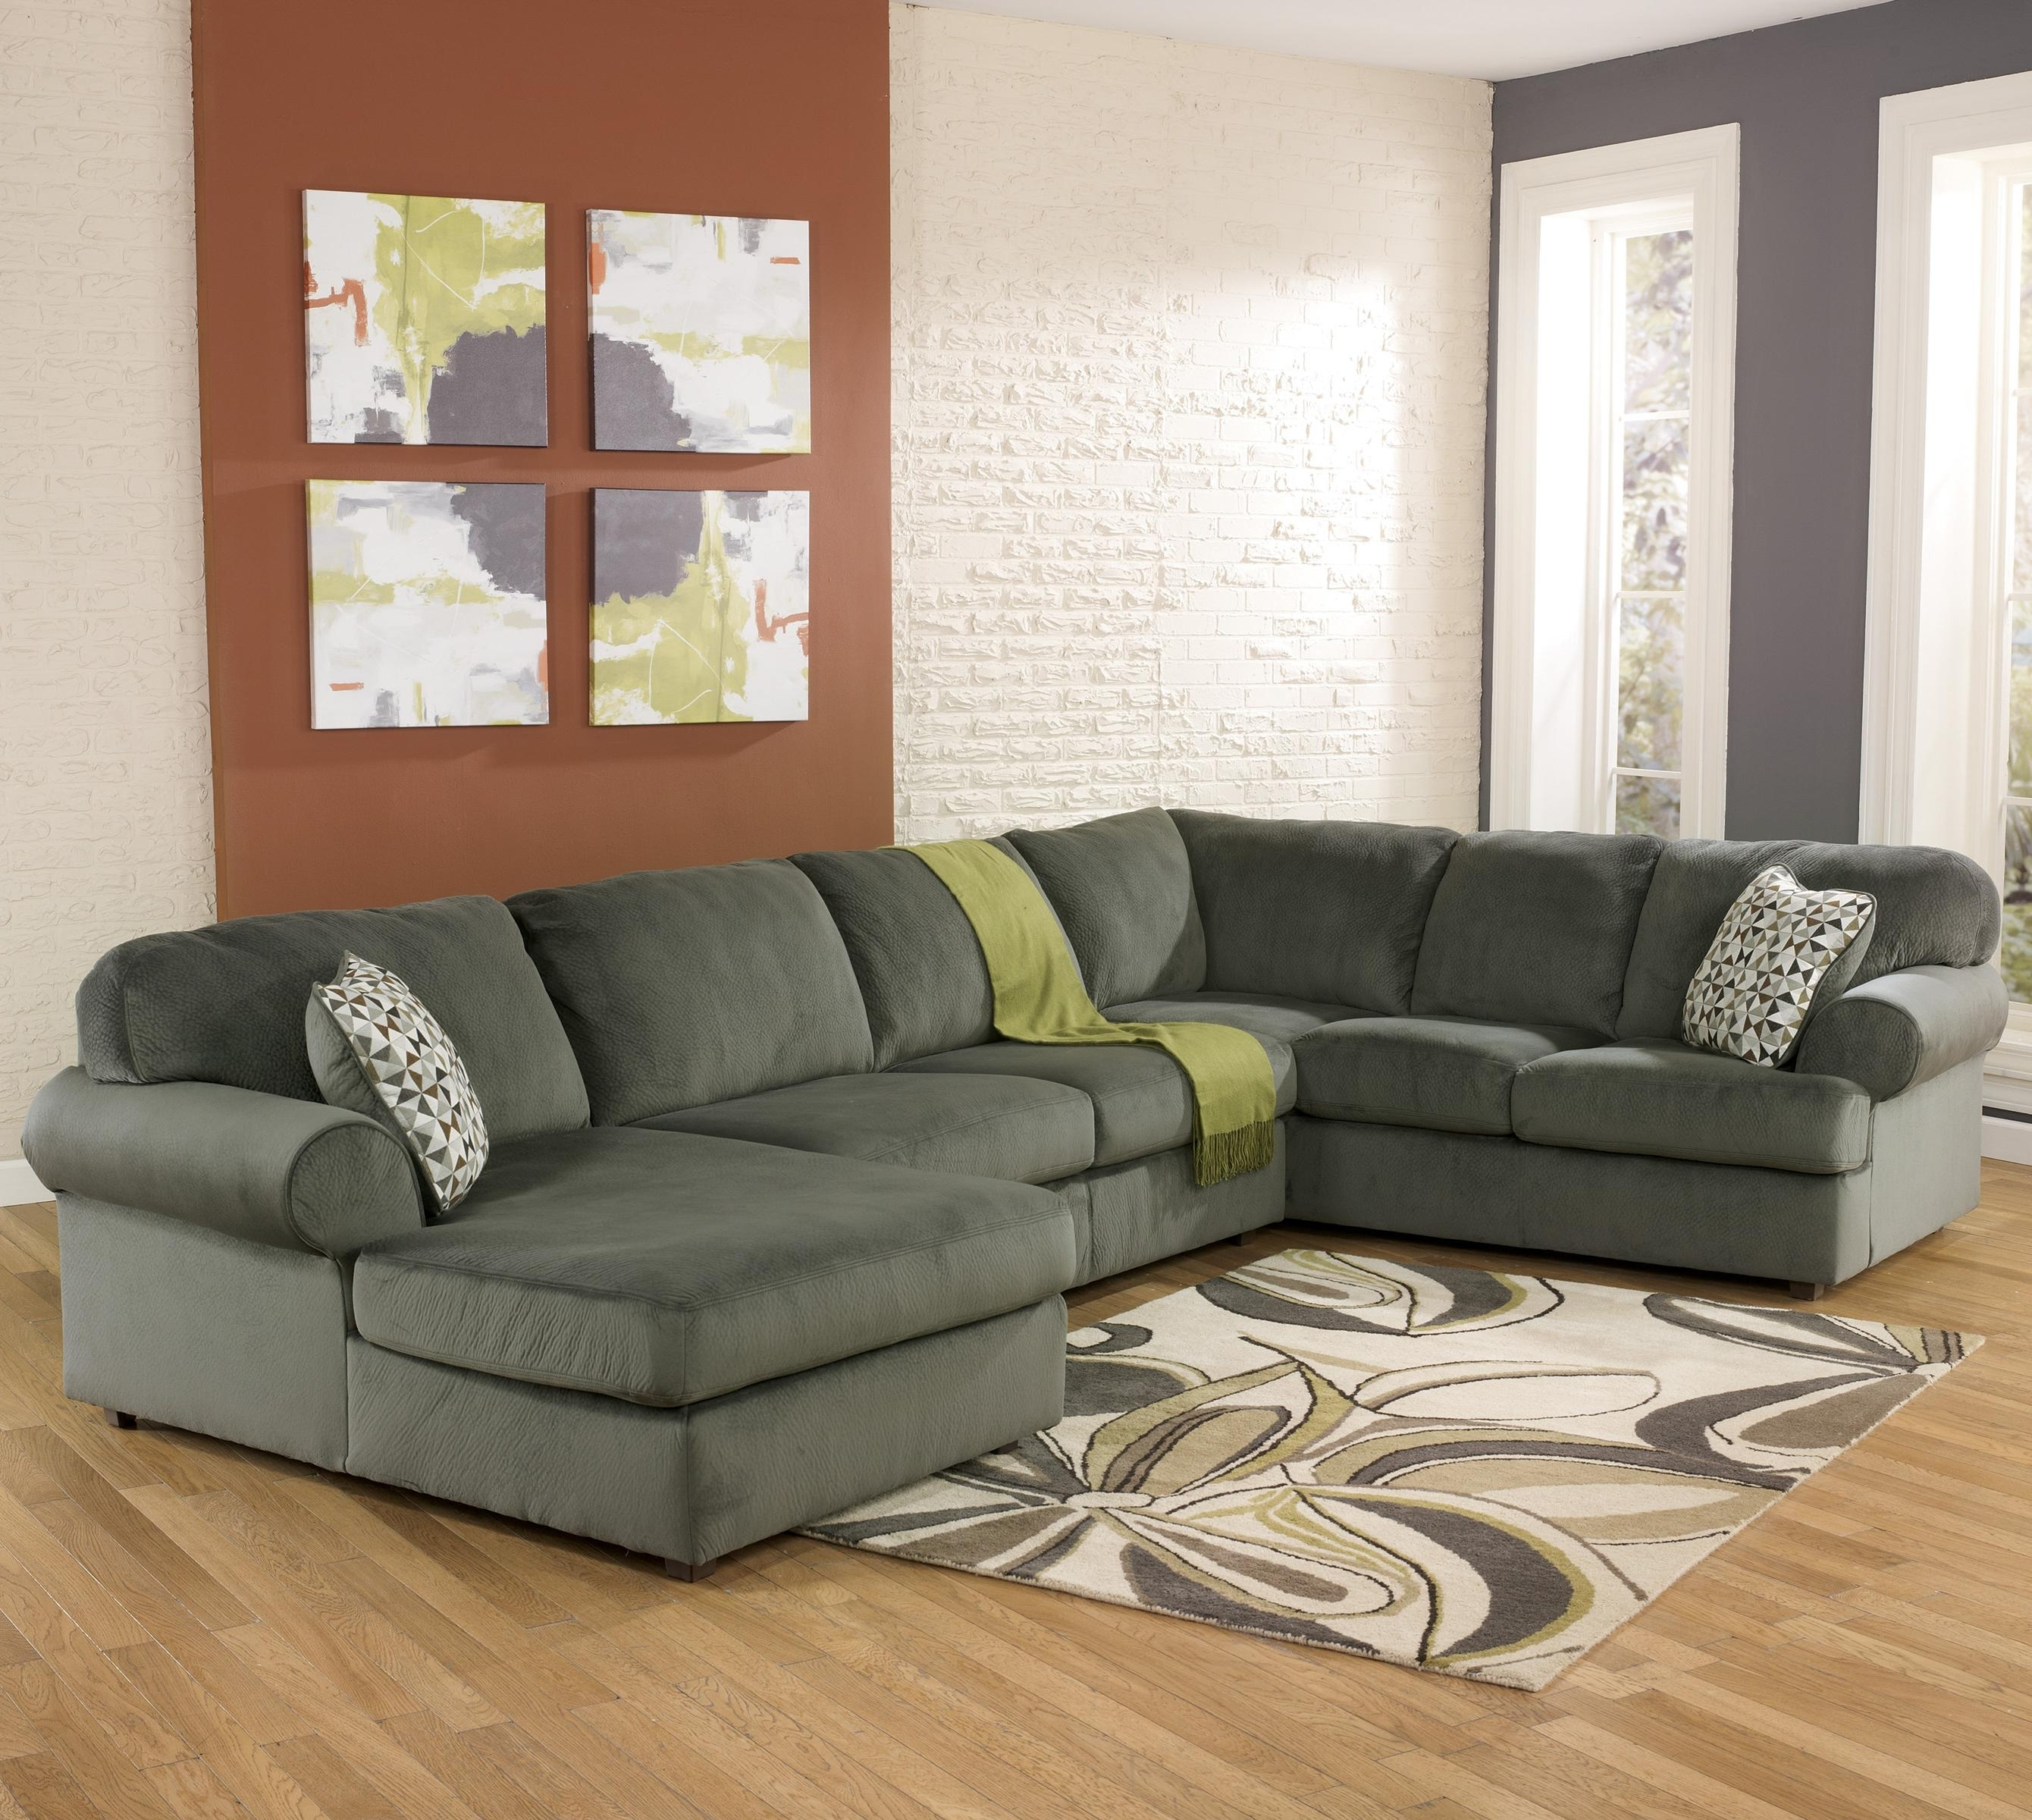 2018 Greenville Nc Sectional Sofas With Regard To Signature Designashley Jessa Place – Pewter Casual Sectional (View 12 of 15)